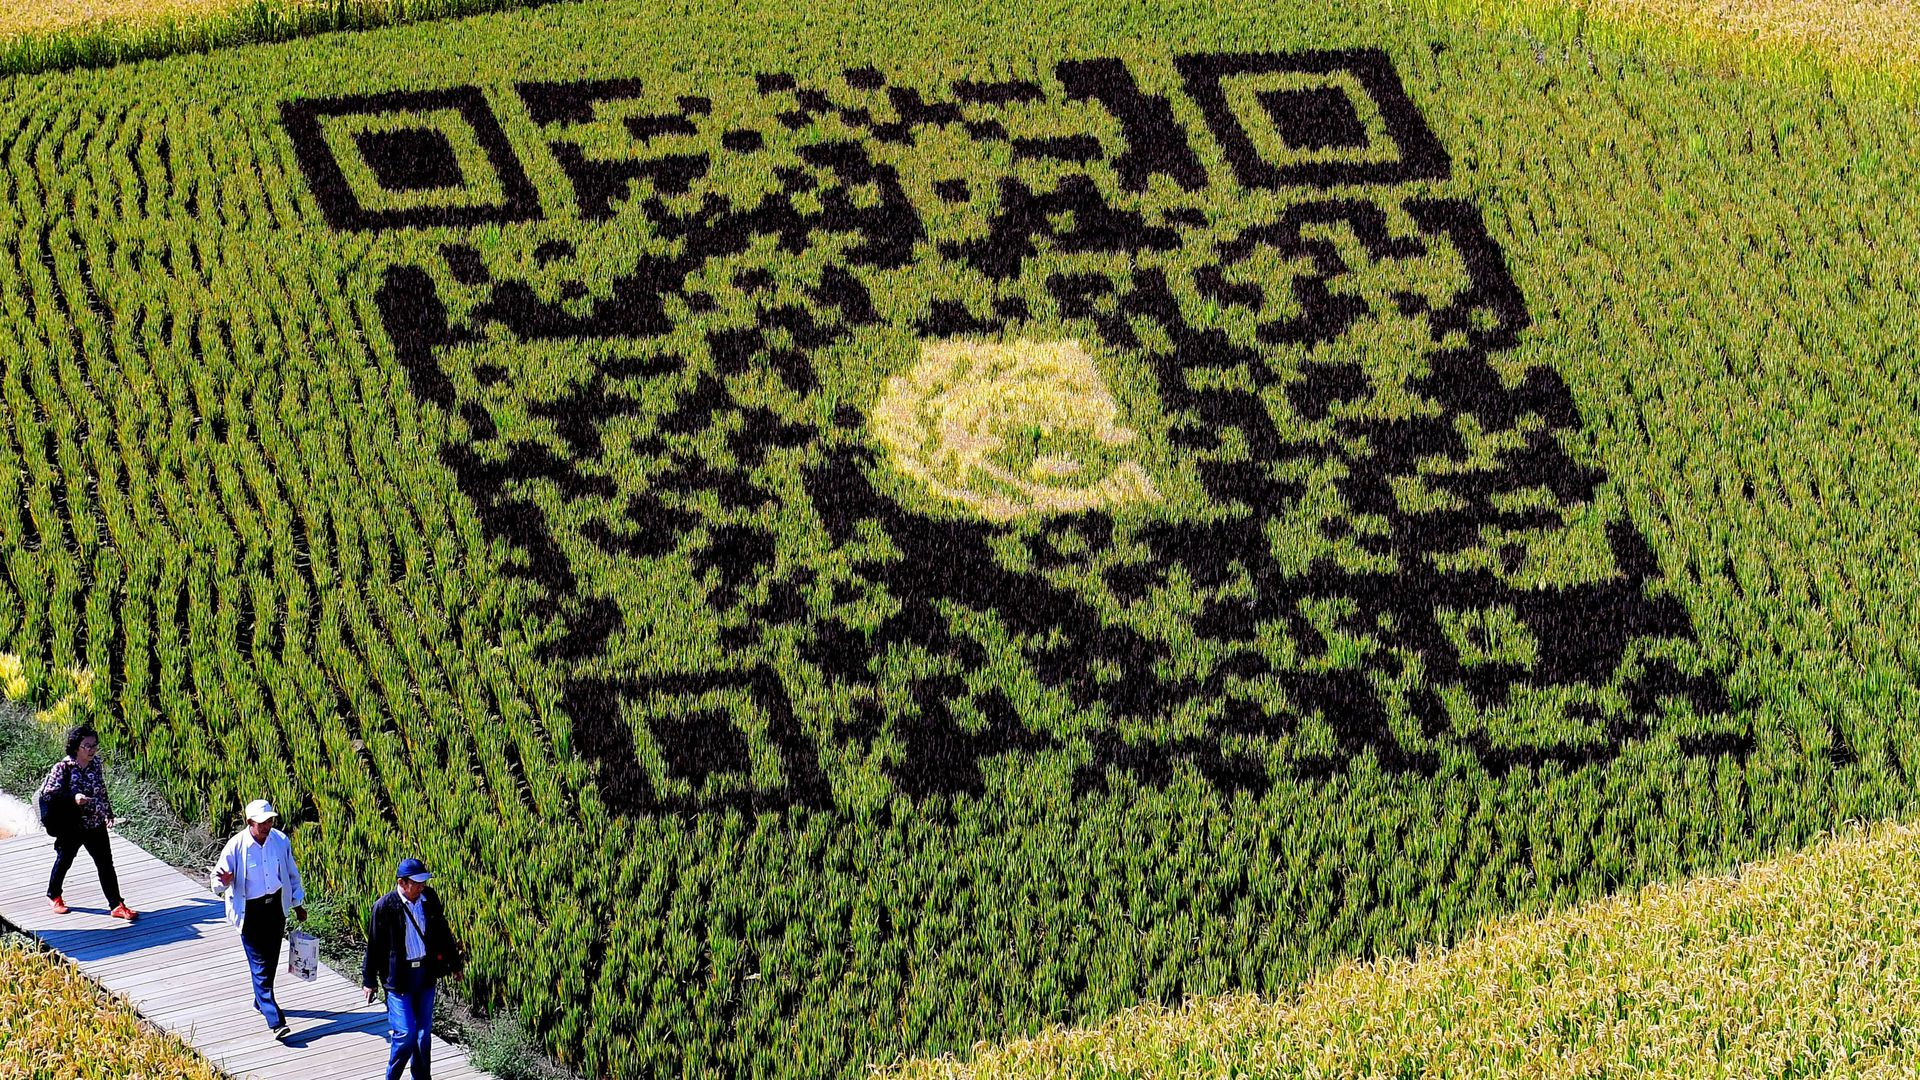 Chinese government is using QR codes to collect data on